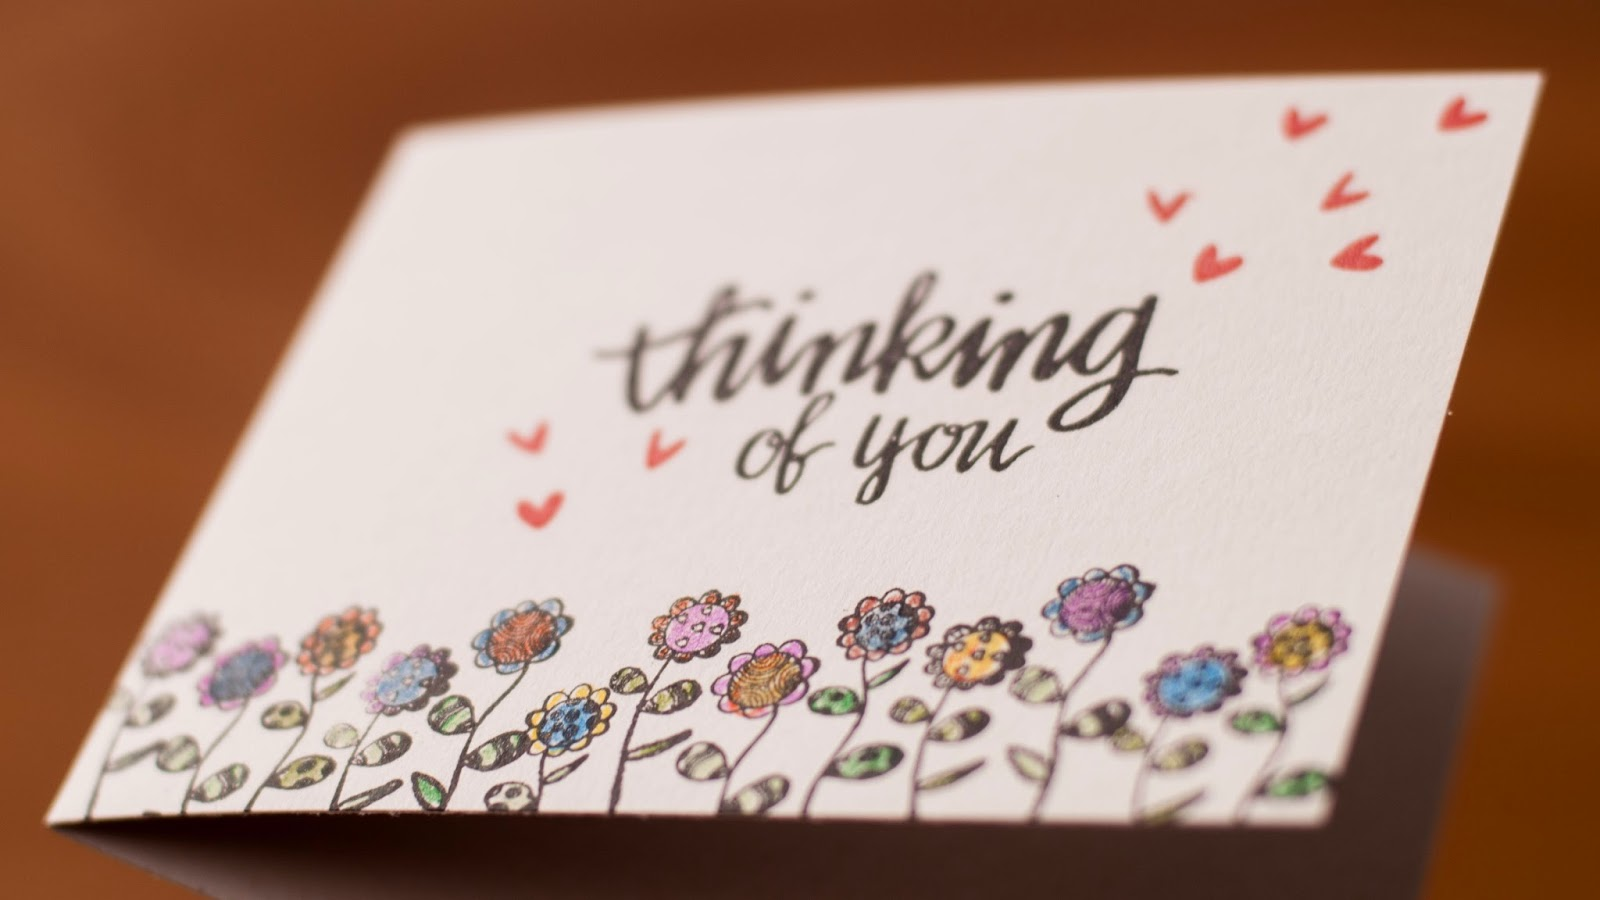 valentine card #2 - thinking of you friendship card spectrum noir colored pencils